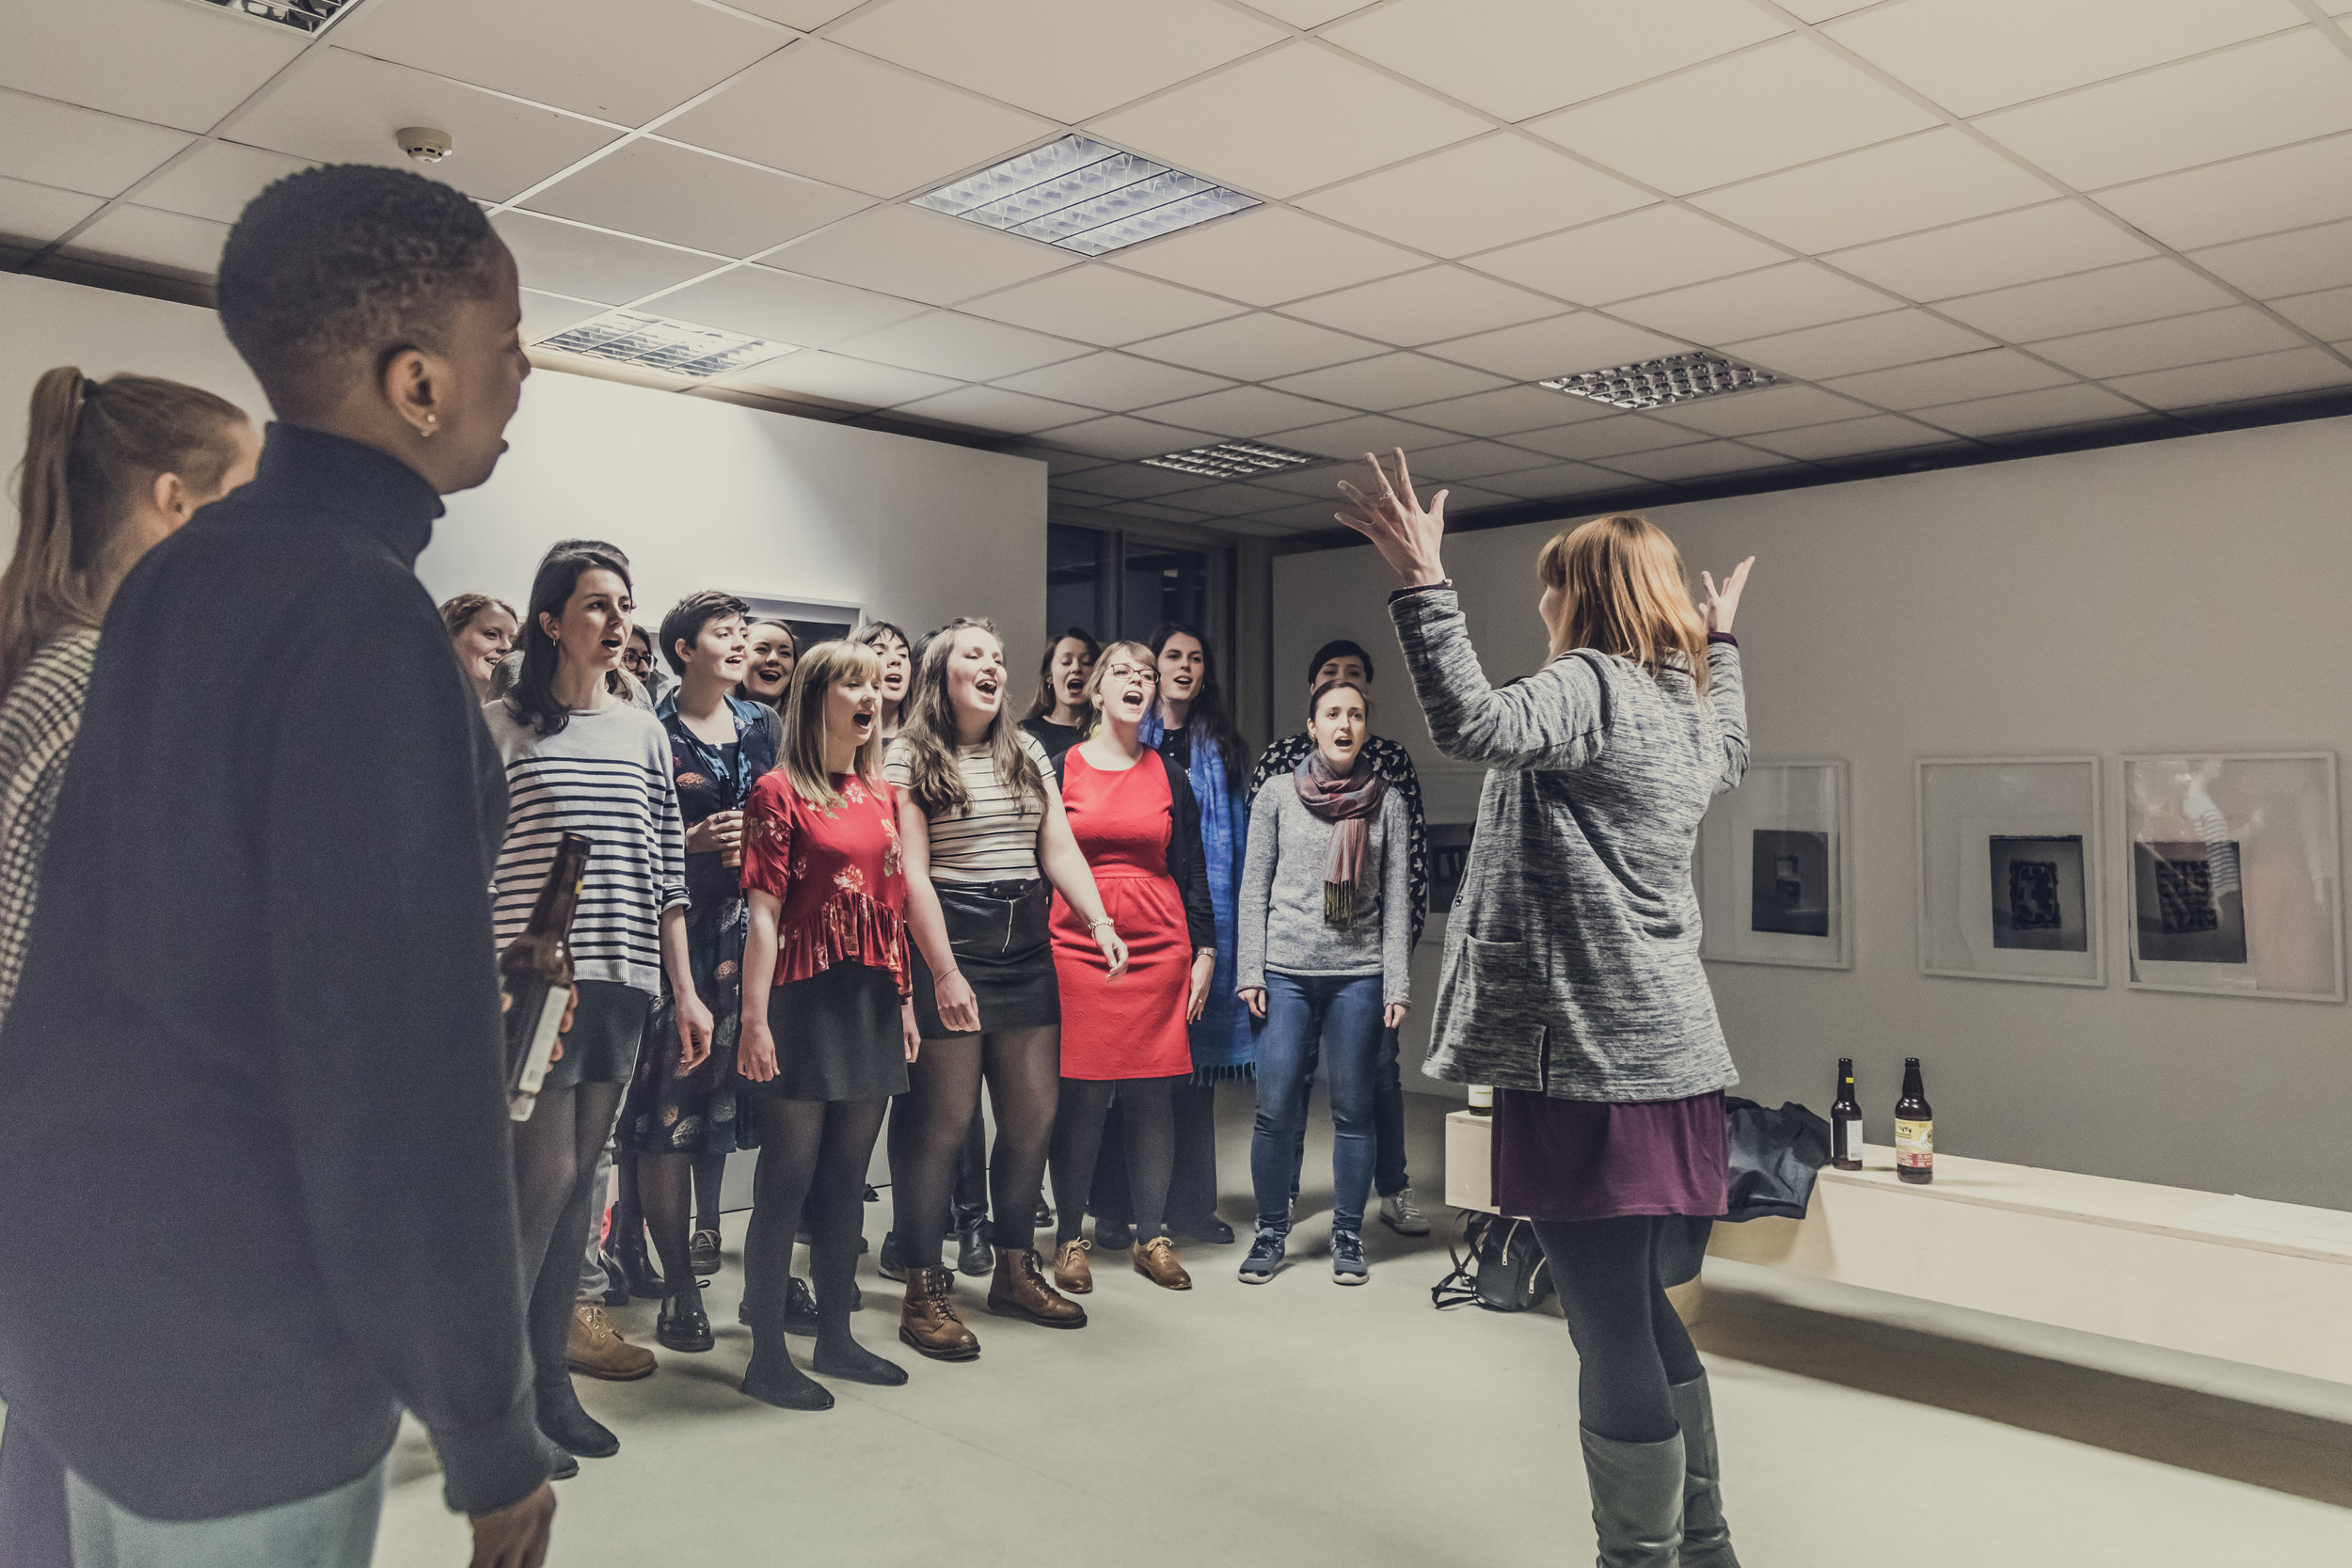 SHE CHOIR - Wednesdays at 5.30-8pmIf you can sing in the shower, you can sing in a choir!